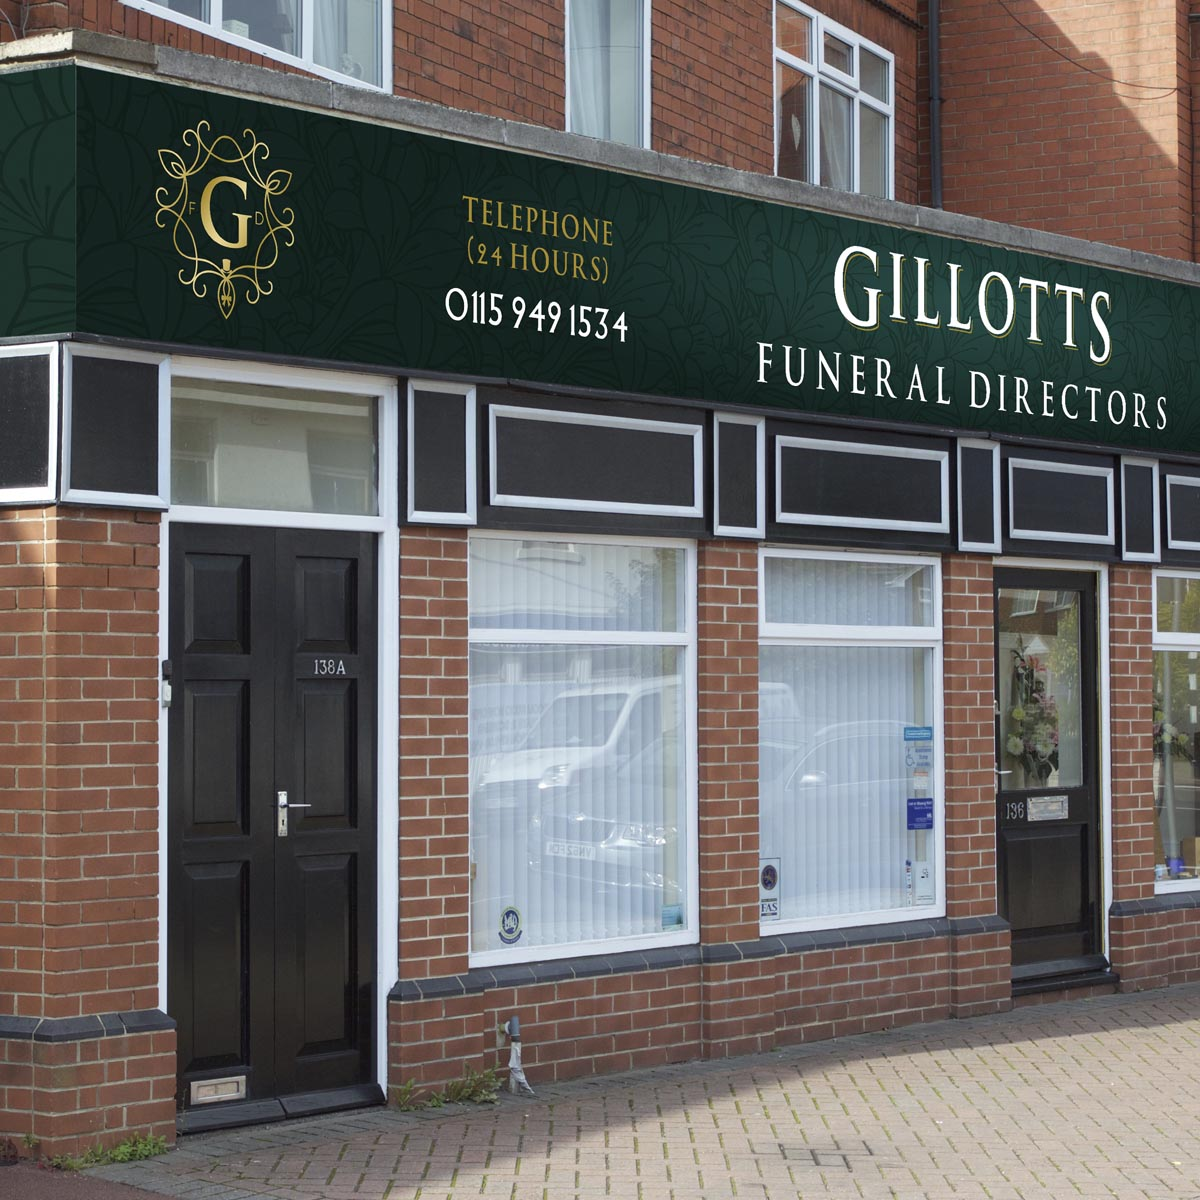 Gillotts Funeral Directors branch signage